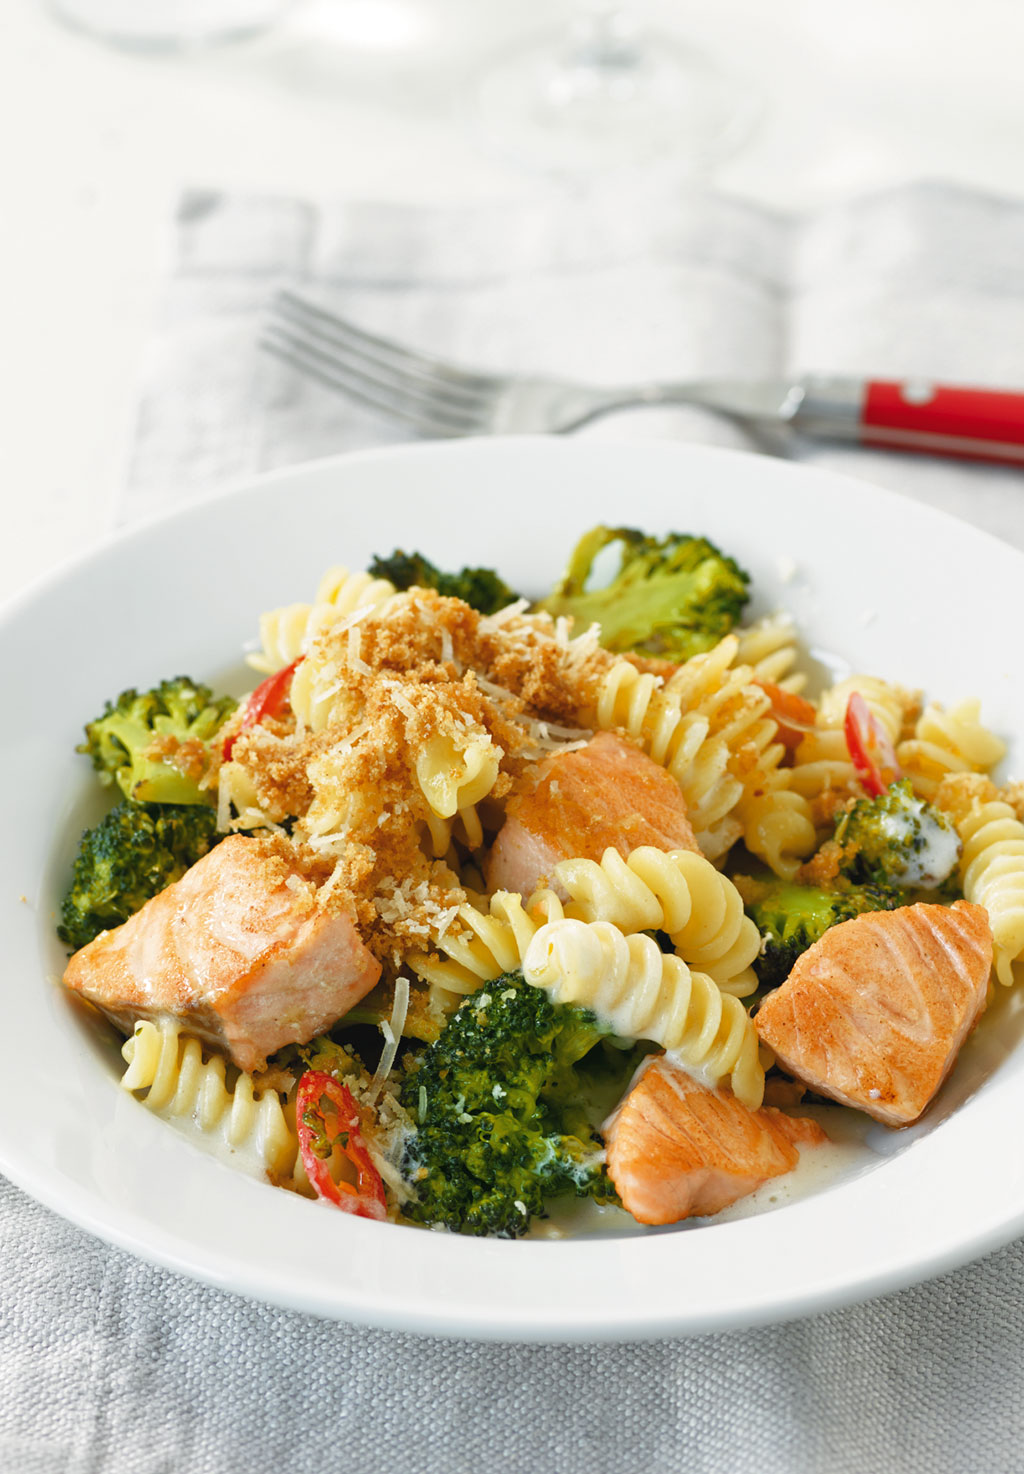 broccoli lachs pasta rezept essen und trinken. Black Bedroom Furniture Sets. Home Design Ideas